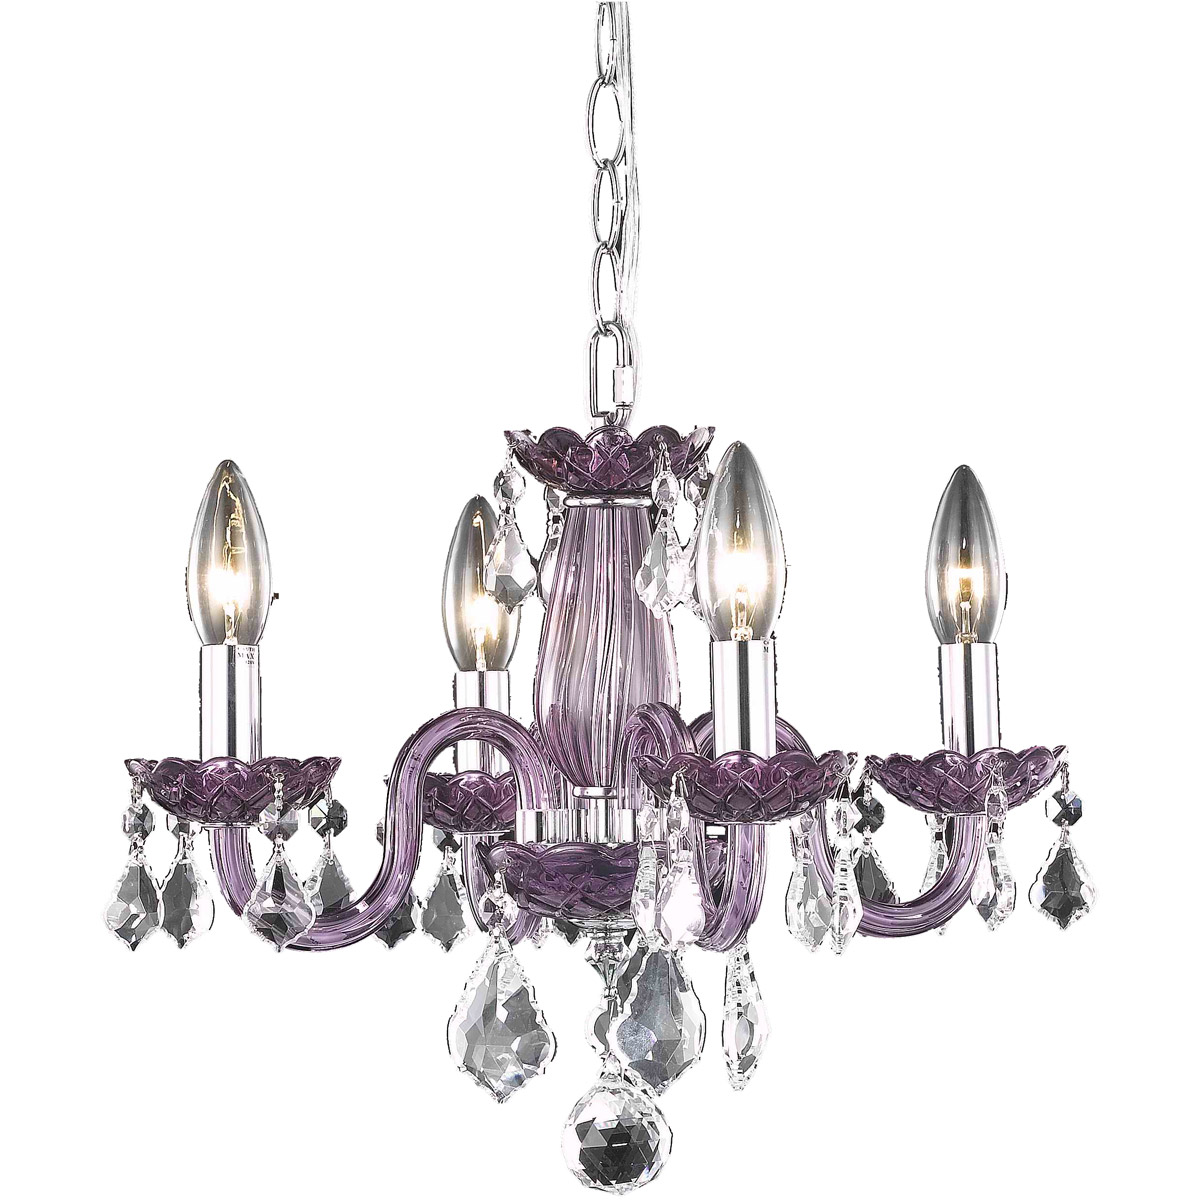 Bathroom lighting fixtures photo 15 Diy Rococo Light 15 Inch Purple Dining Chandelier Ceiling Light In Clear Ebay Light 15